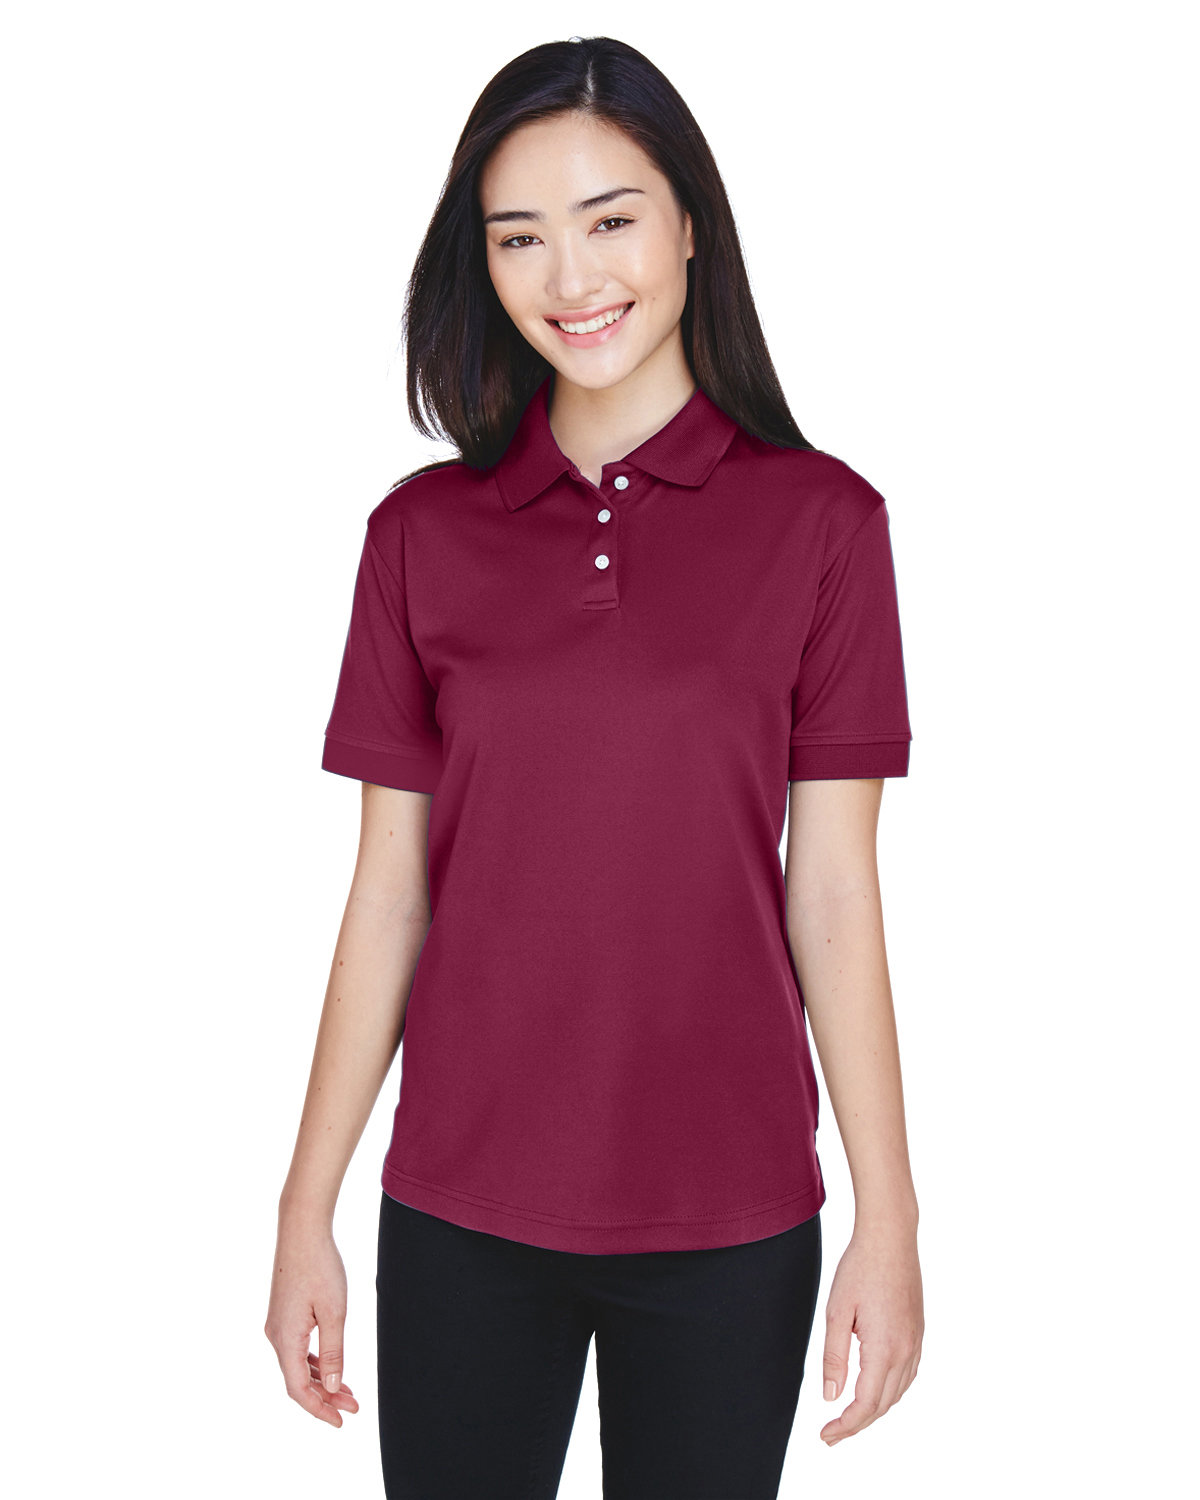 UltraClub Ladies' Platinum Performance Piqué Polo with TempControl Technology MAROON